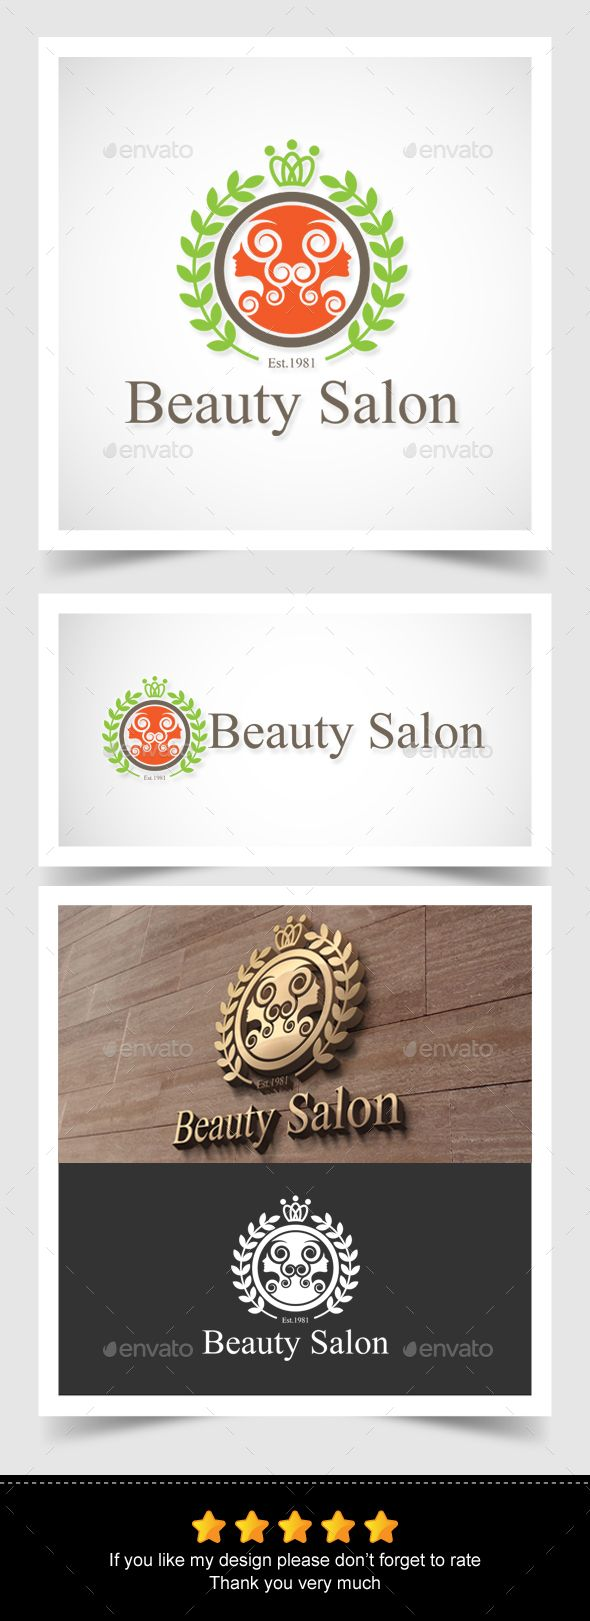 hairdresser resume%0A Beauty Salon Logo